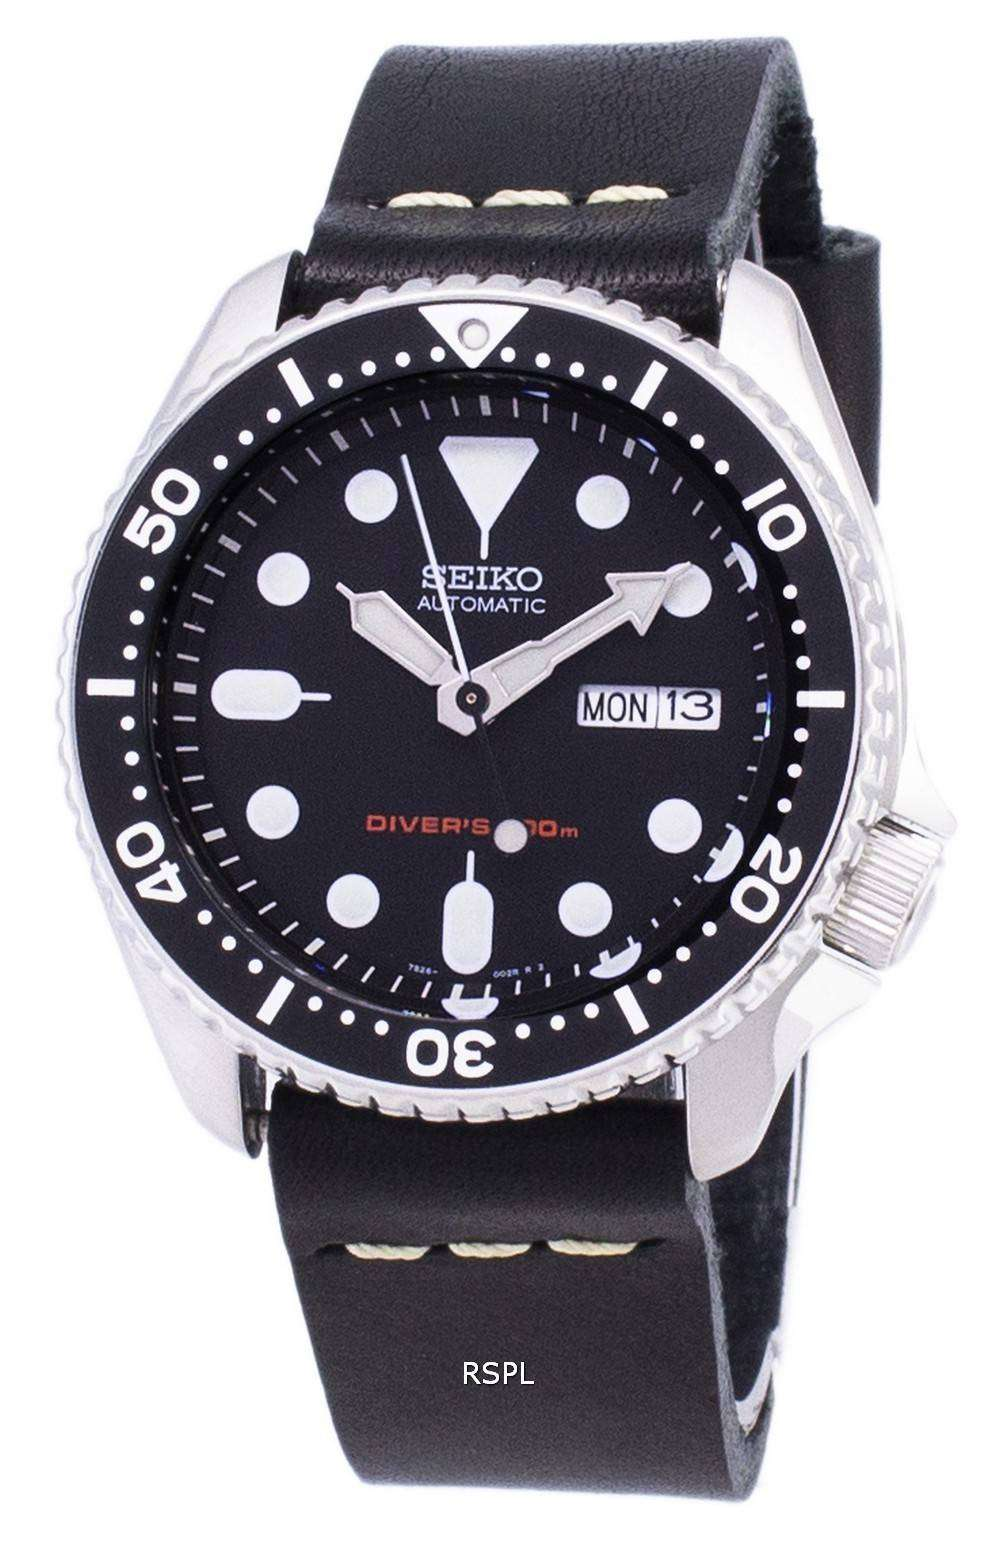 Seiko Automatic SKX007K1-LS14 Diver's 200M Black Leather Strap Men's Watch